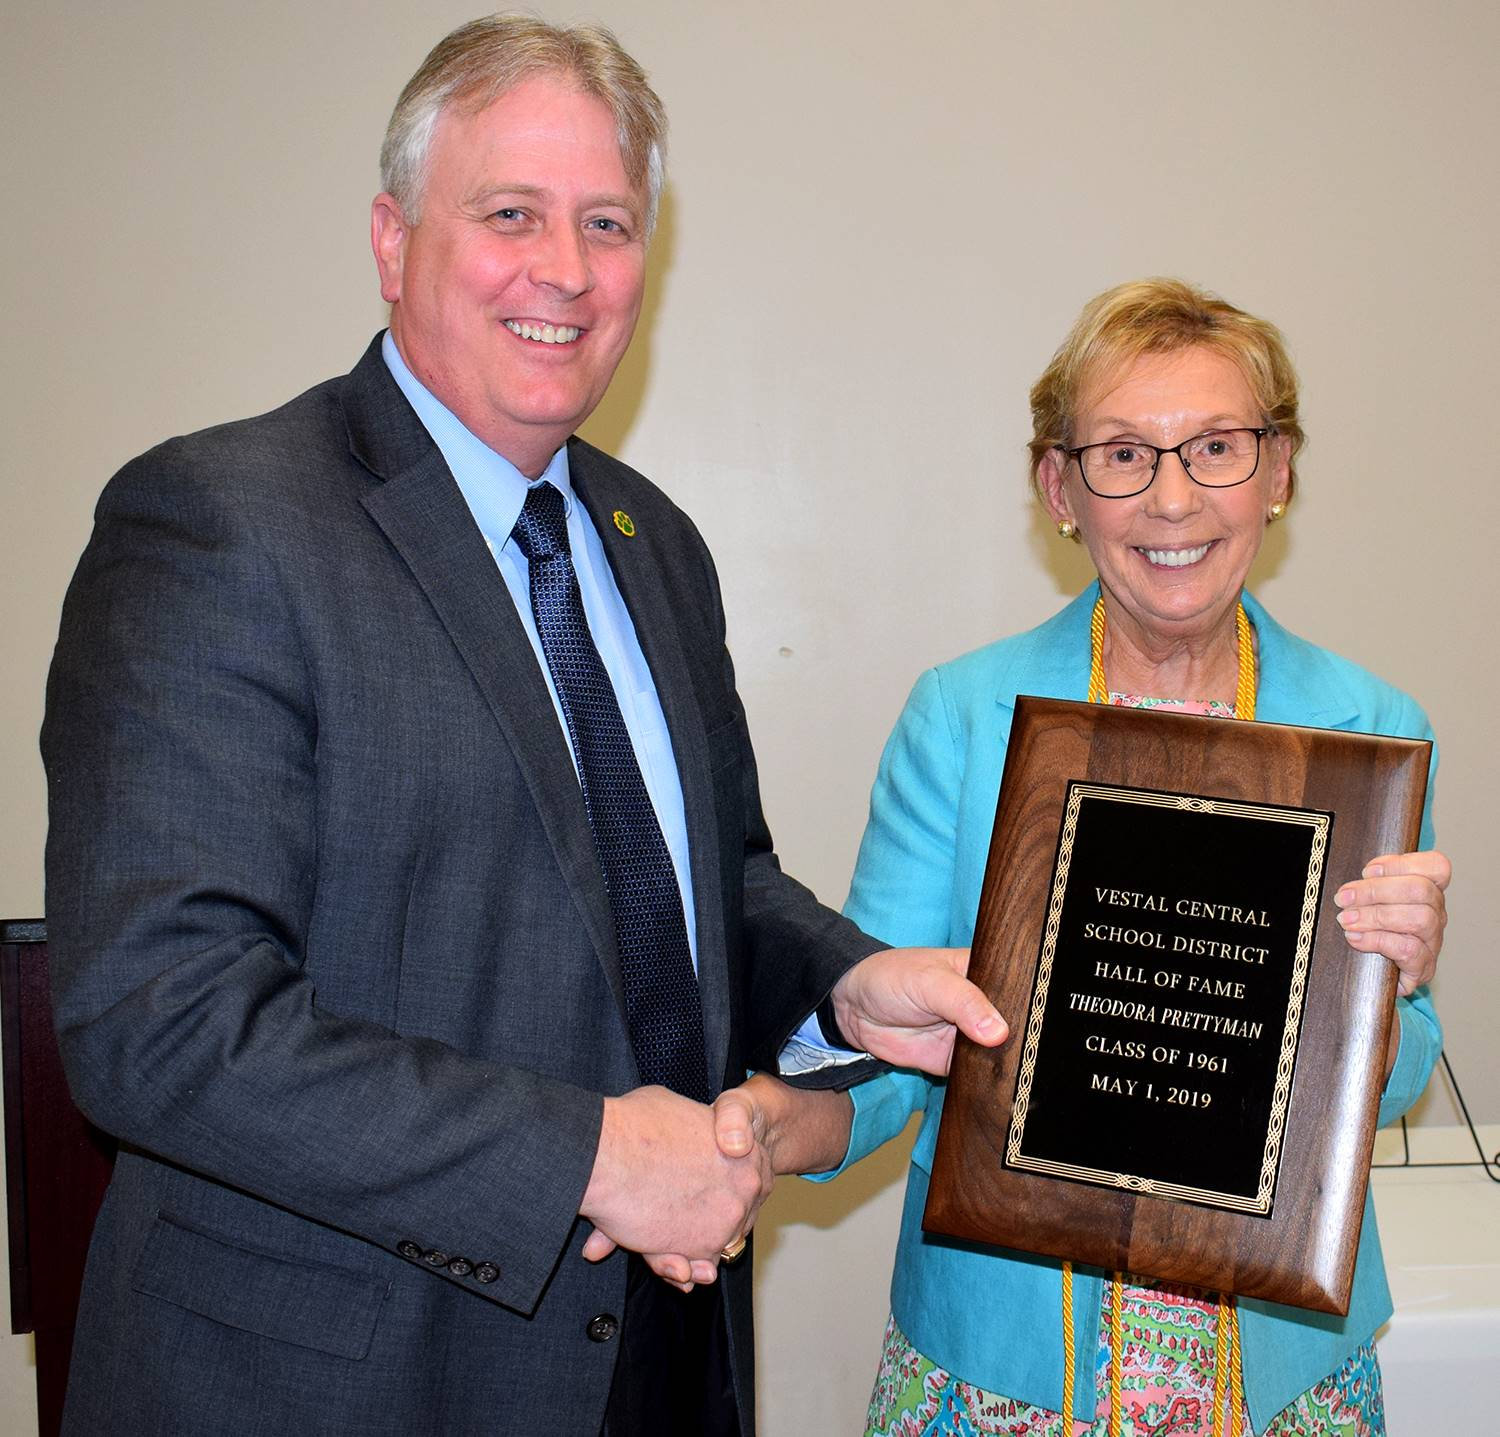 Superintendent Ahearn gives Hall of Fame Inductee Theodora Prettyman her plaque.